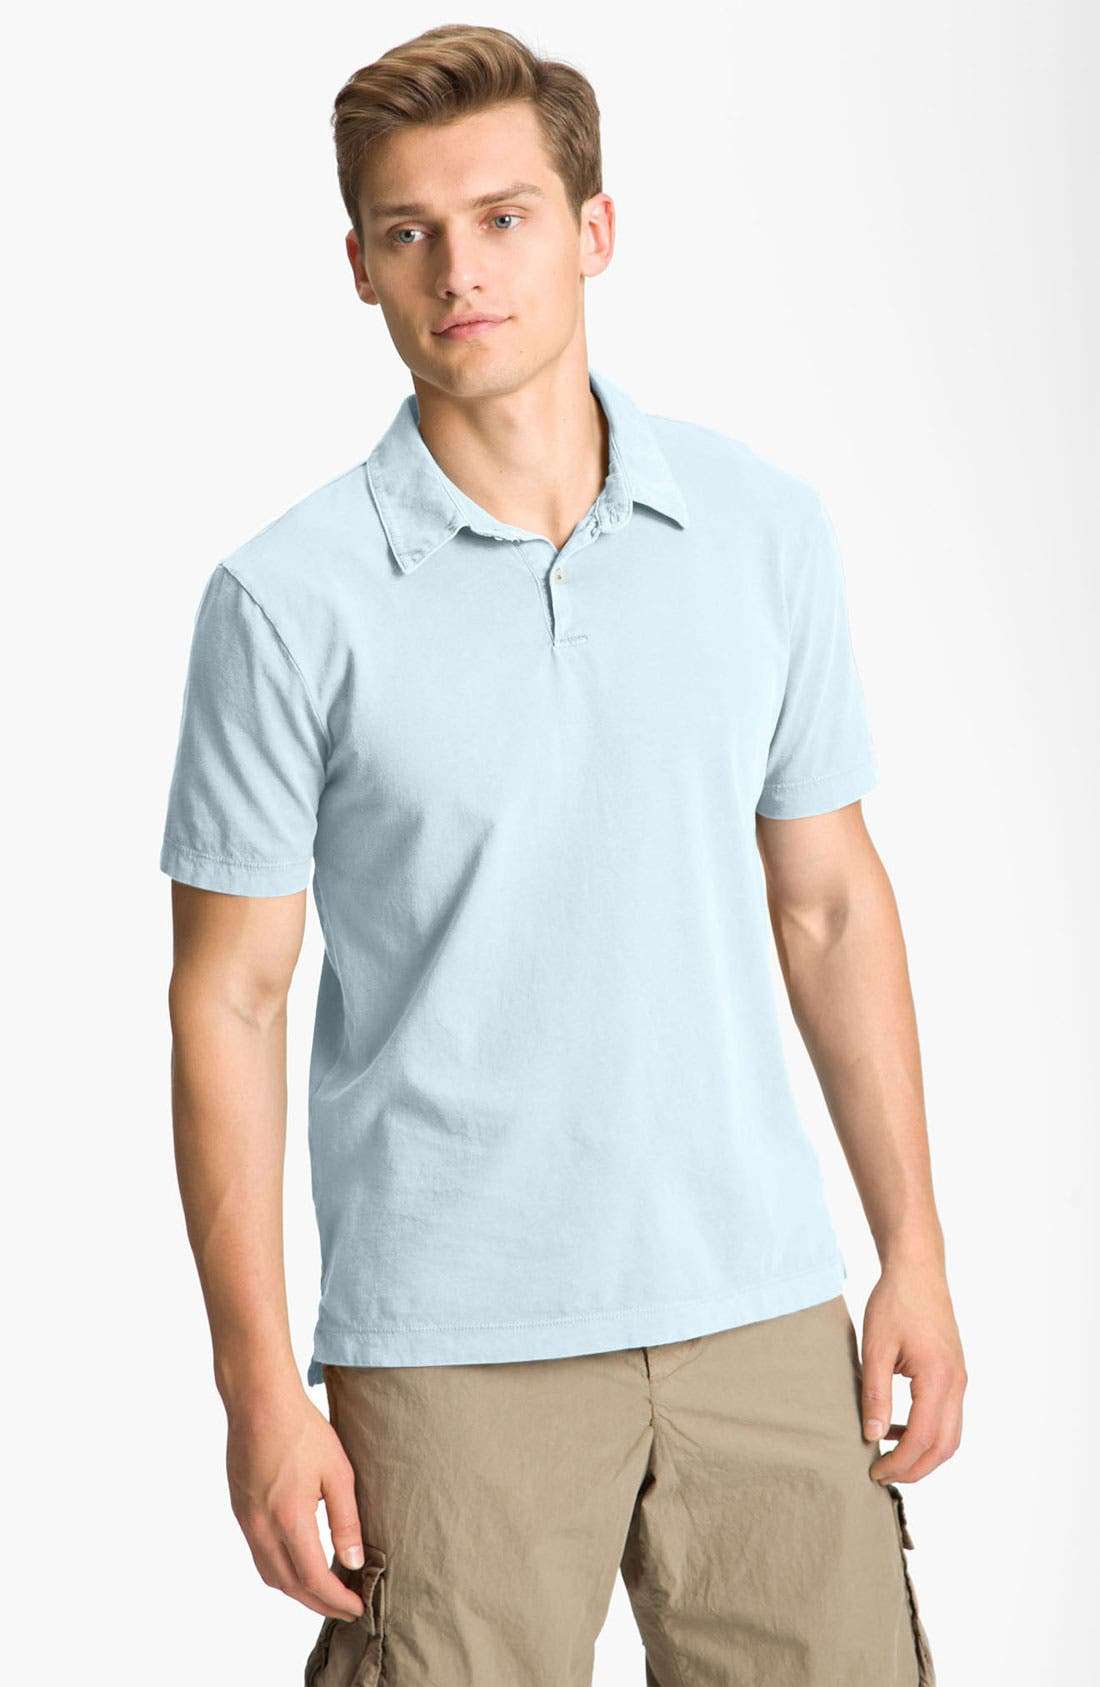 JAMES PERSE, Slim Fit Sueded Jersey Polo, Main thumbnail 1, color, POWDER BLUE